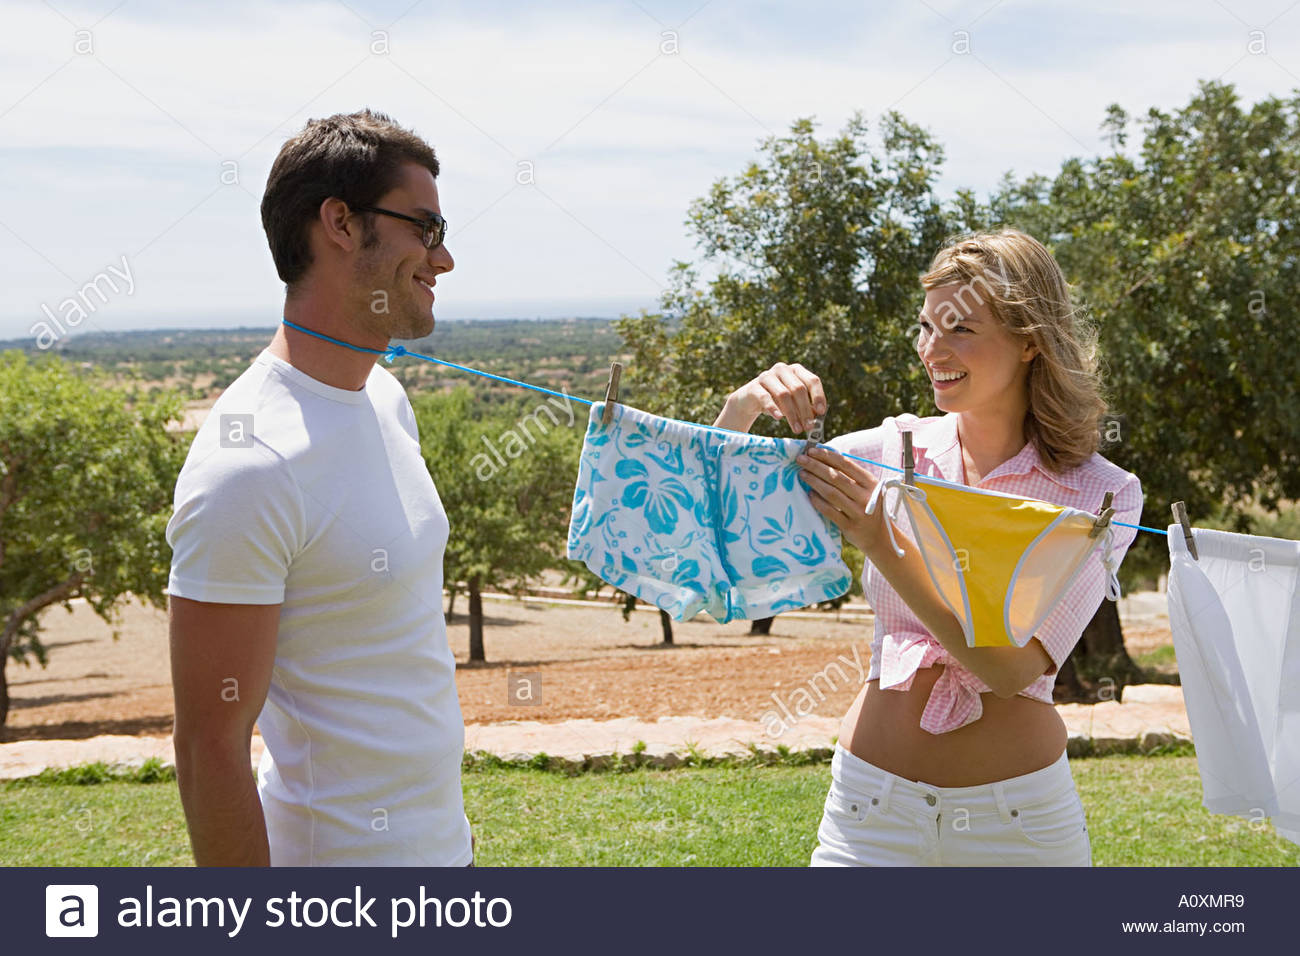 Man with clothes line tied round his neck - Stock Image